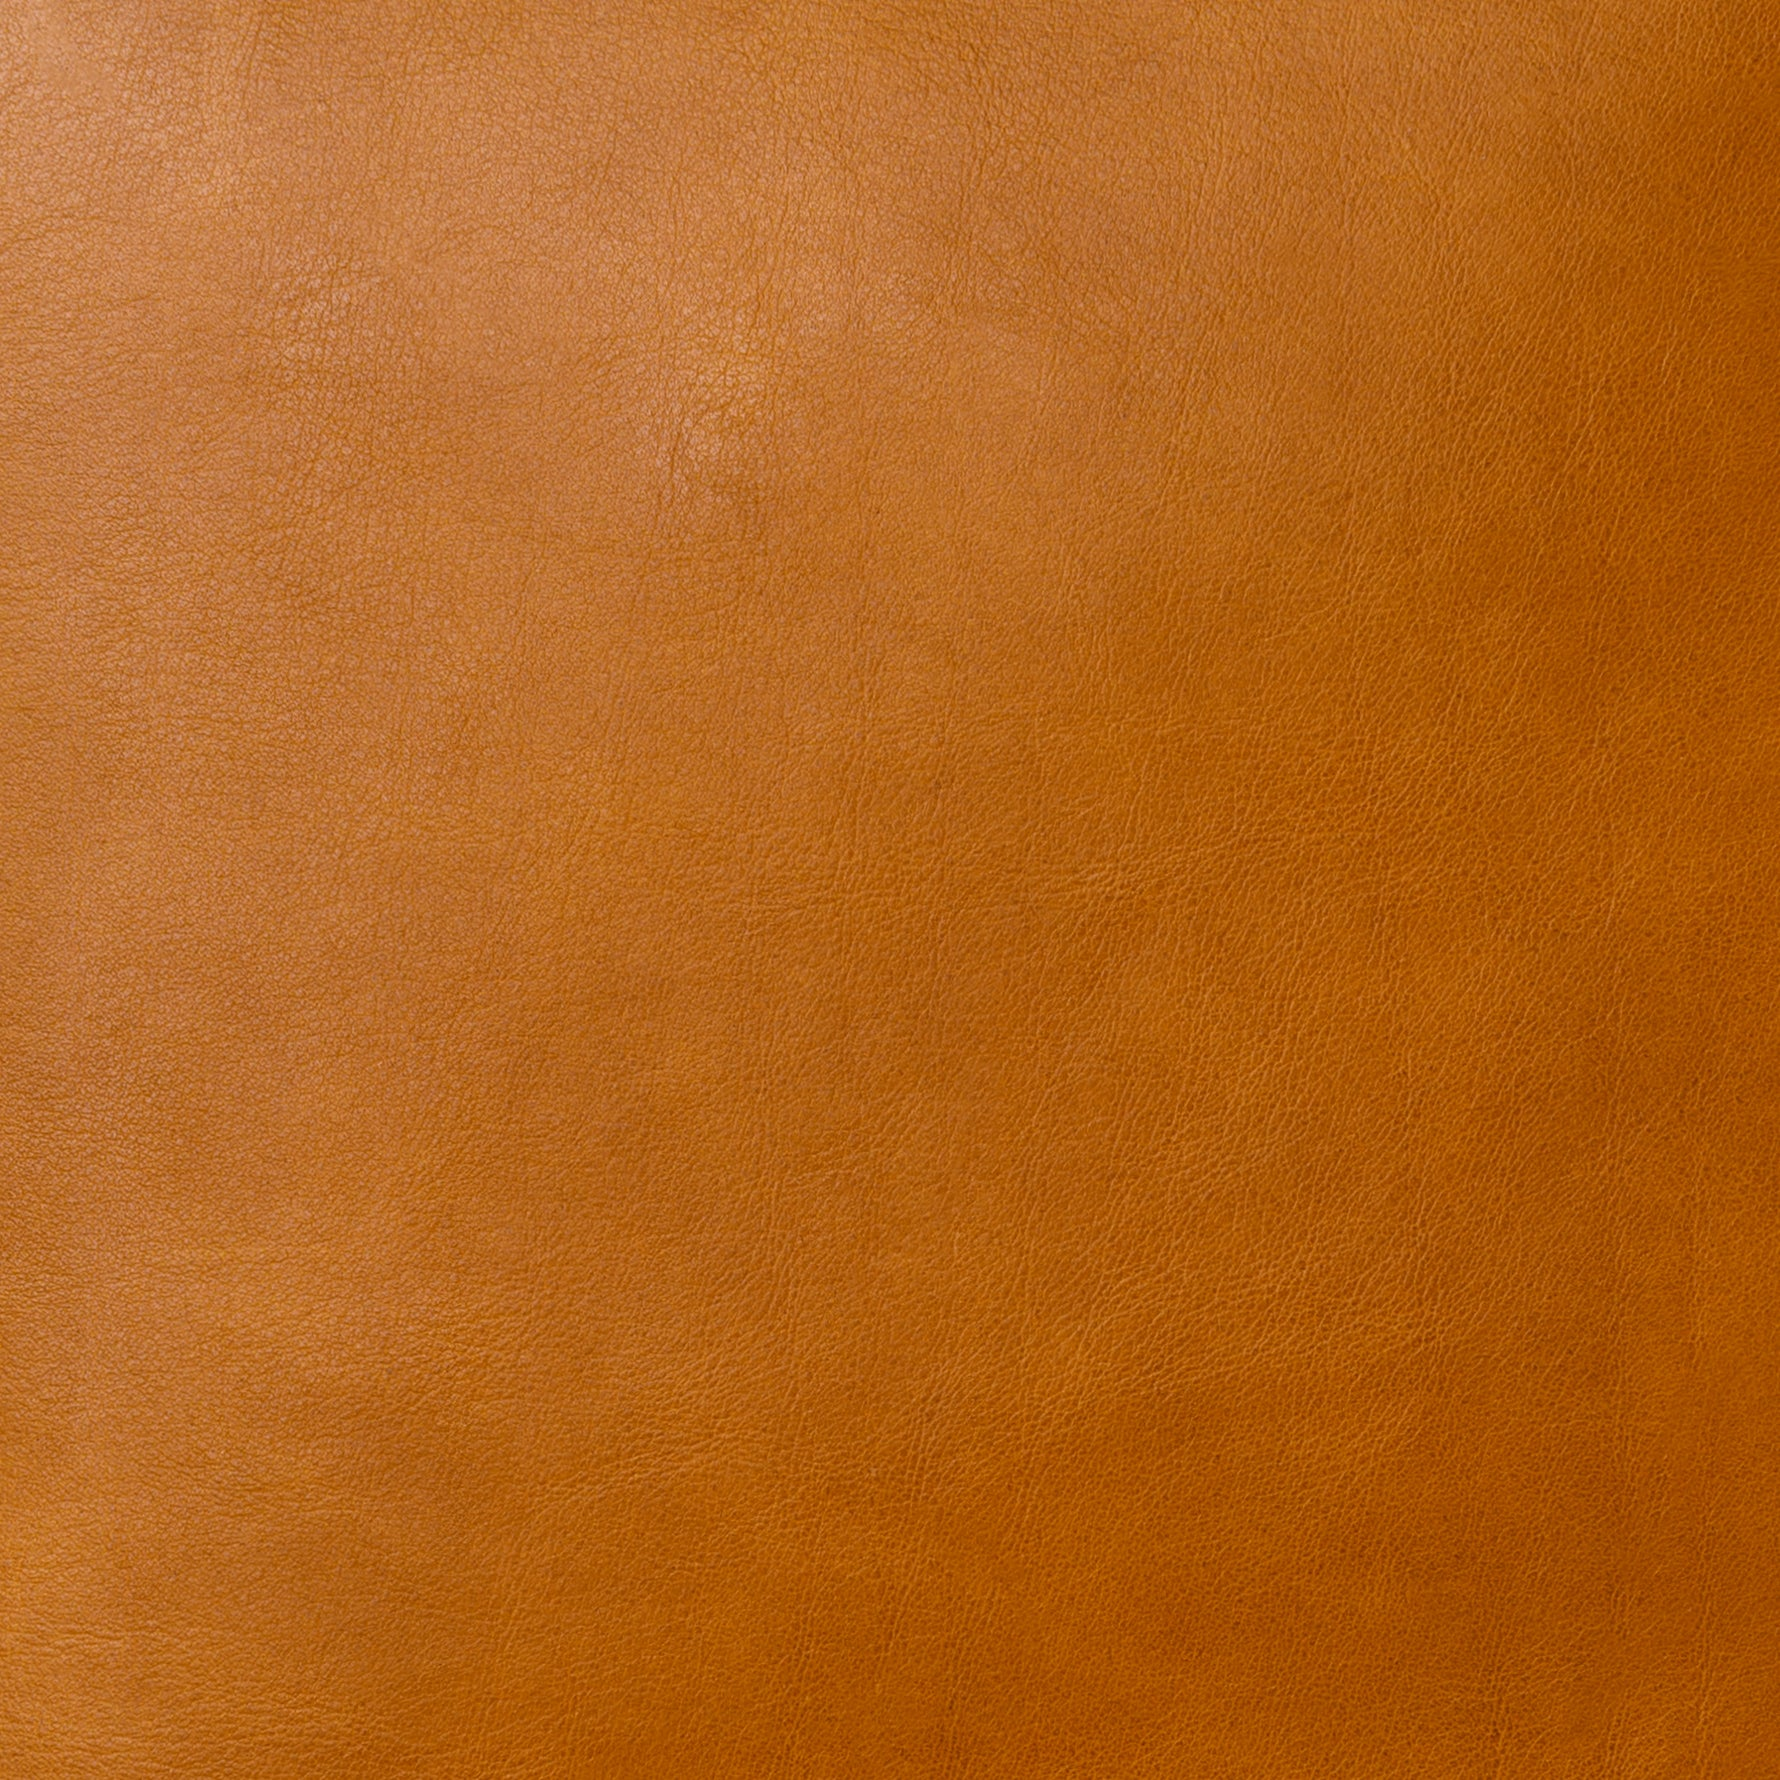 LEATHER SWATCH KIT